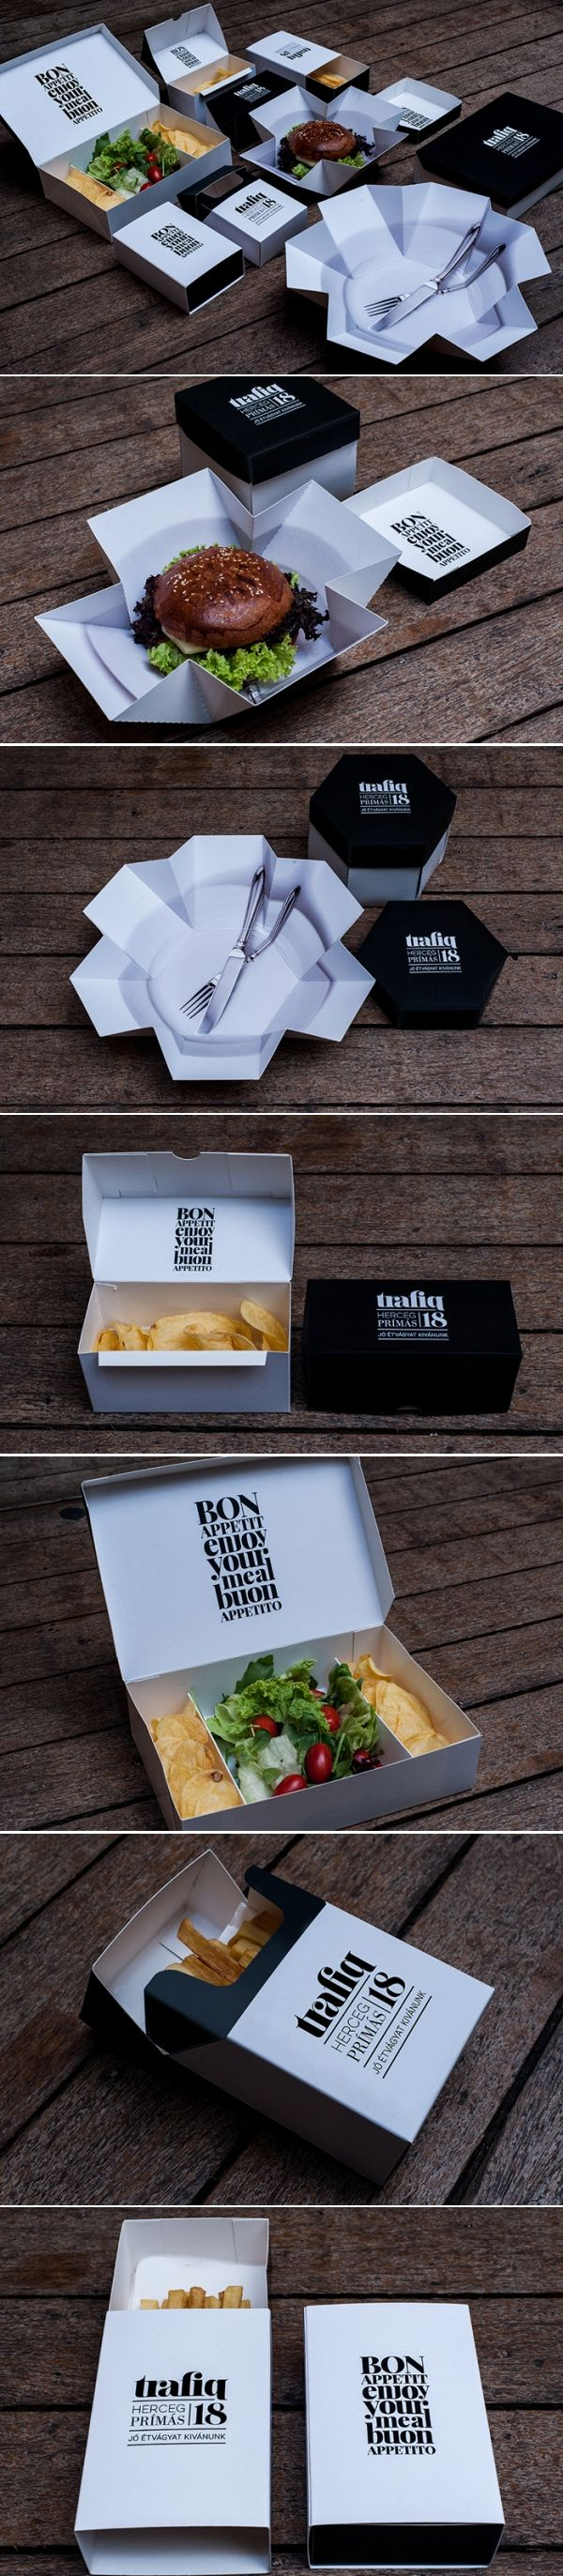 Food design - Trafiq - The typography is a bit trite, but the folding is incredibly creative. Like, Comment, Repin !!